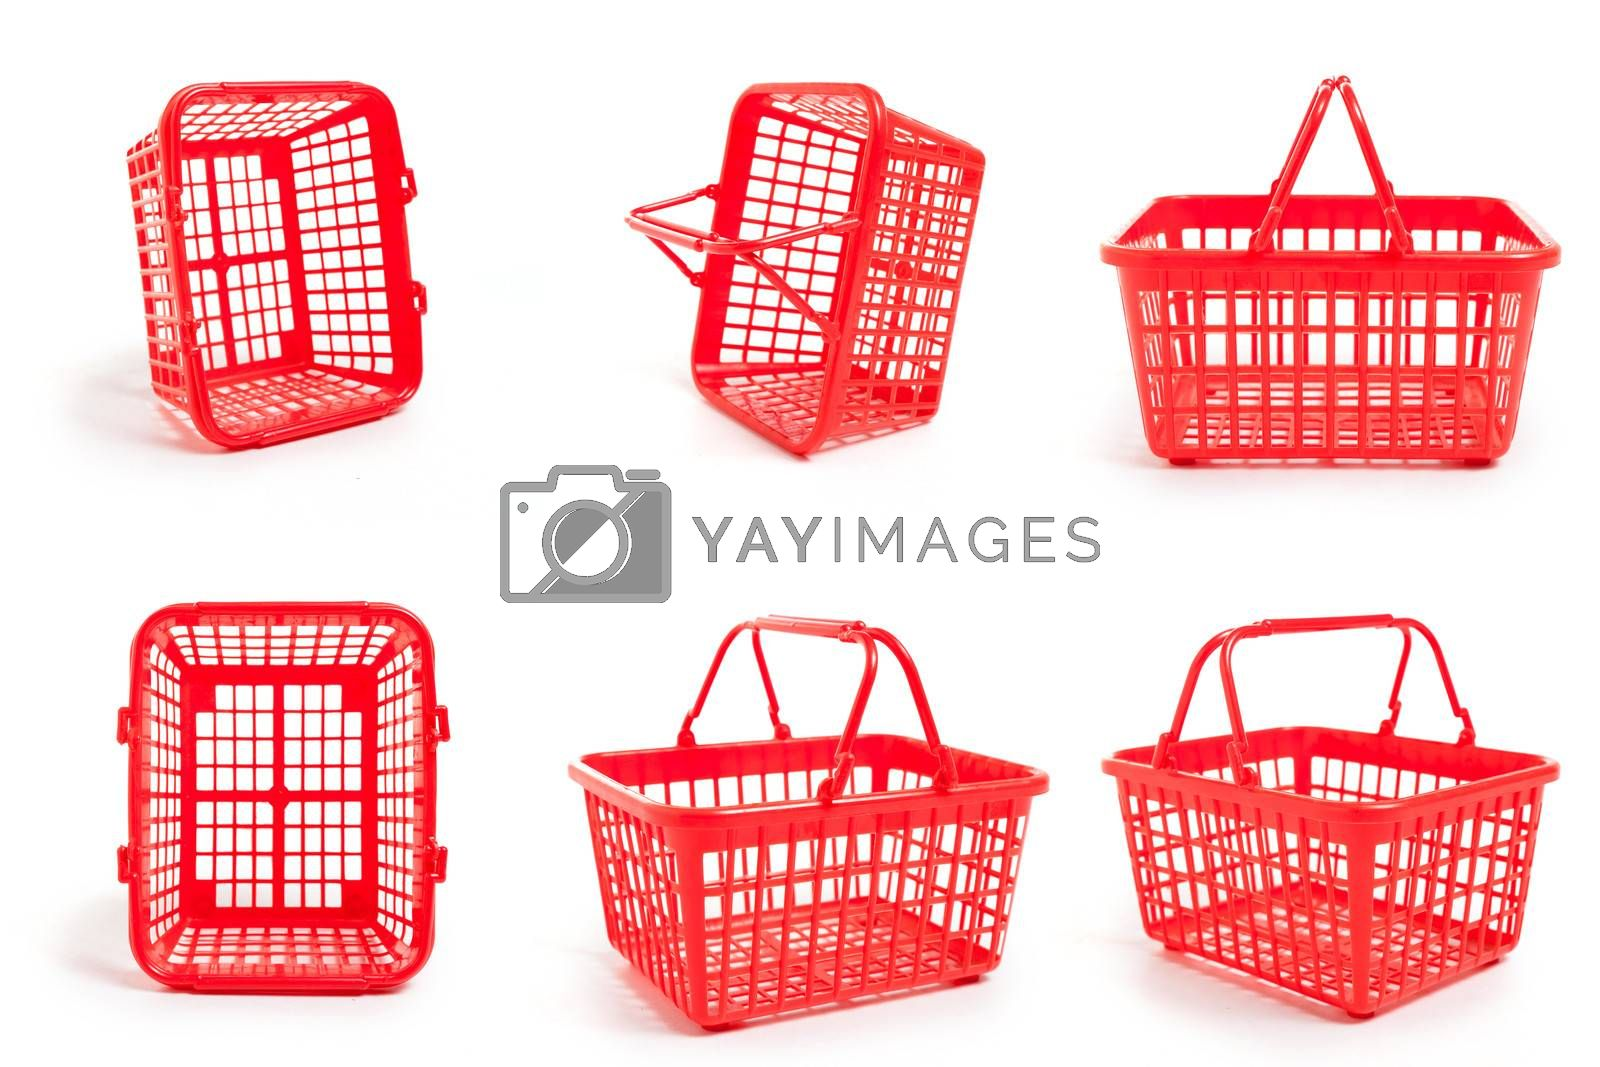 Royalty free image of Empty Shopping Baskets by mothy20